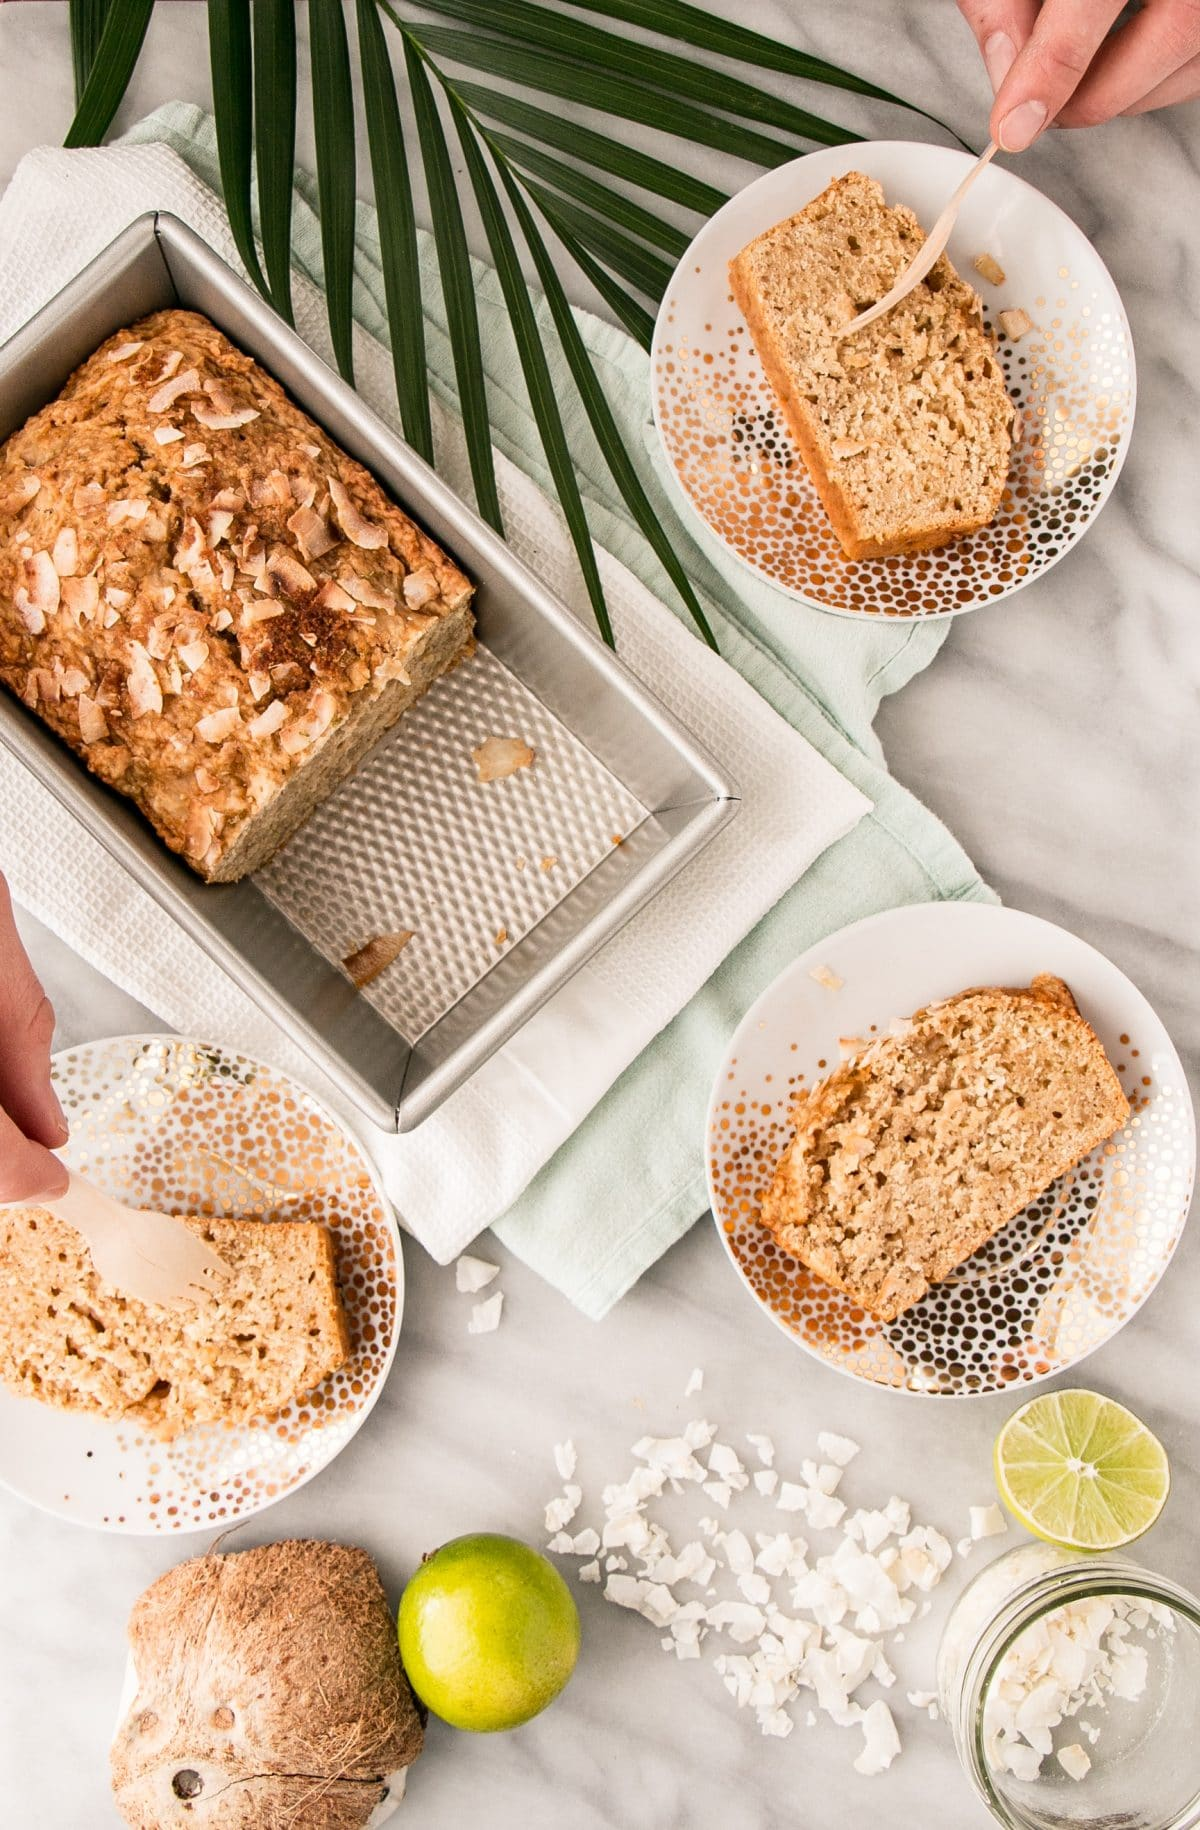 This Coconut Lime Loaf is a one bowl easy to prepare quick bread. Brighten up your day with this vibrant Coconut Lime Loaf! #coconut #lime #easyrecipe #comfortfood